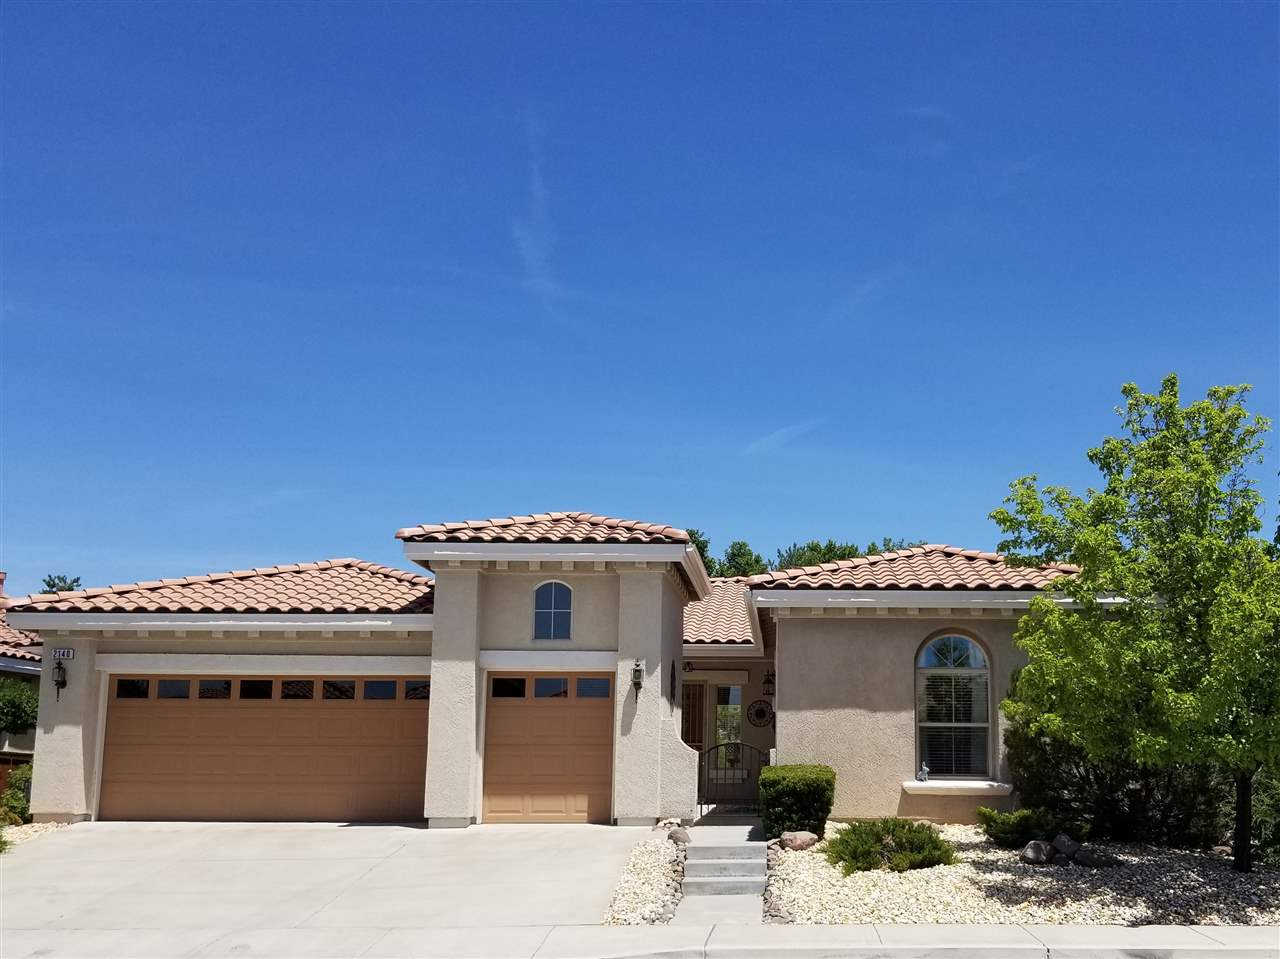 2140 Corleone, Sparks, NV 89434-2077 now has a new price of $439,900!